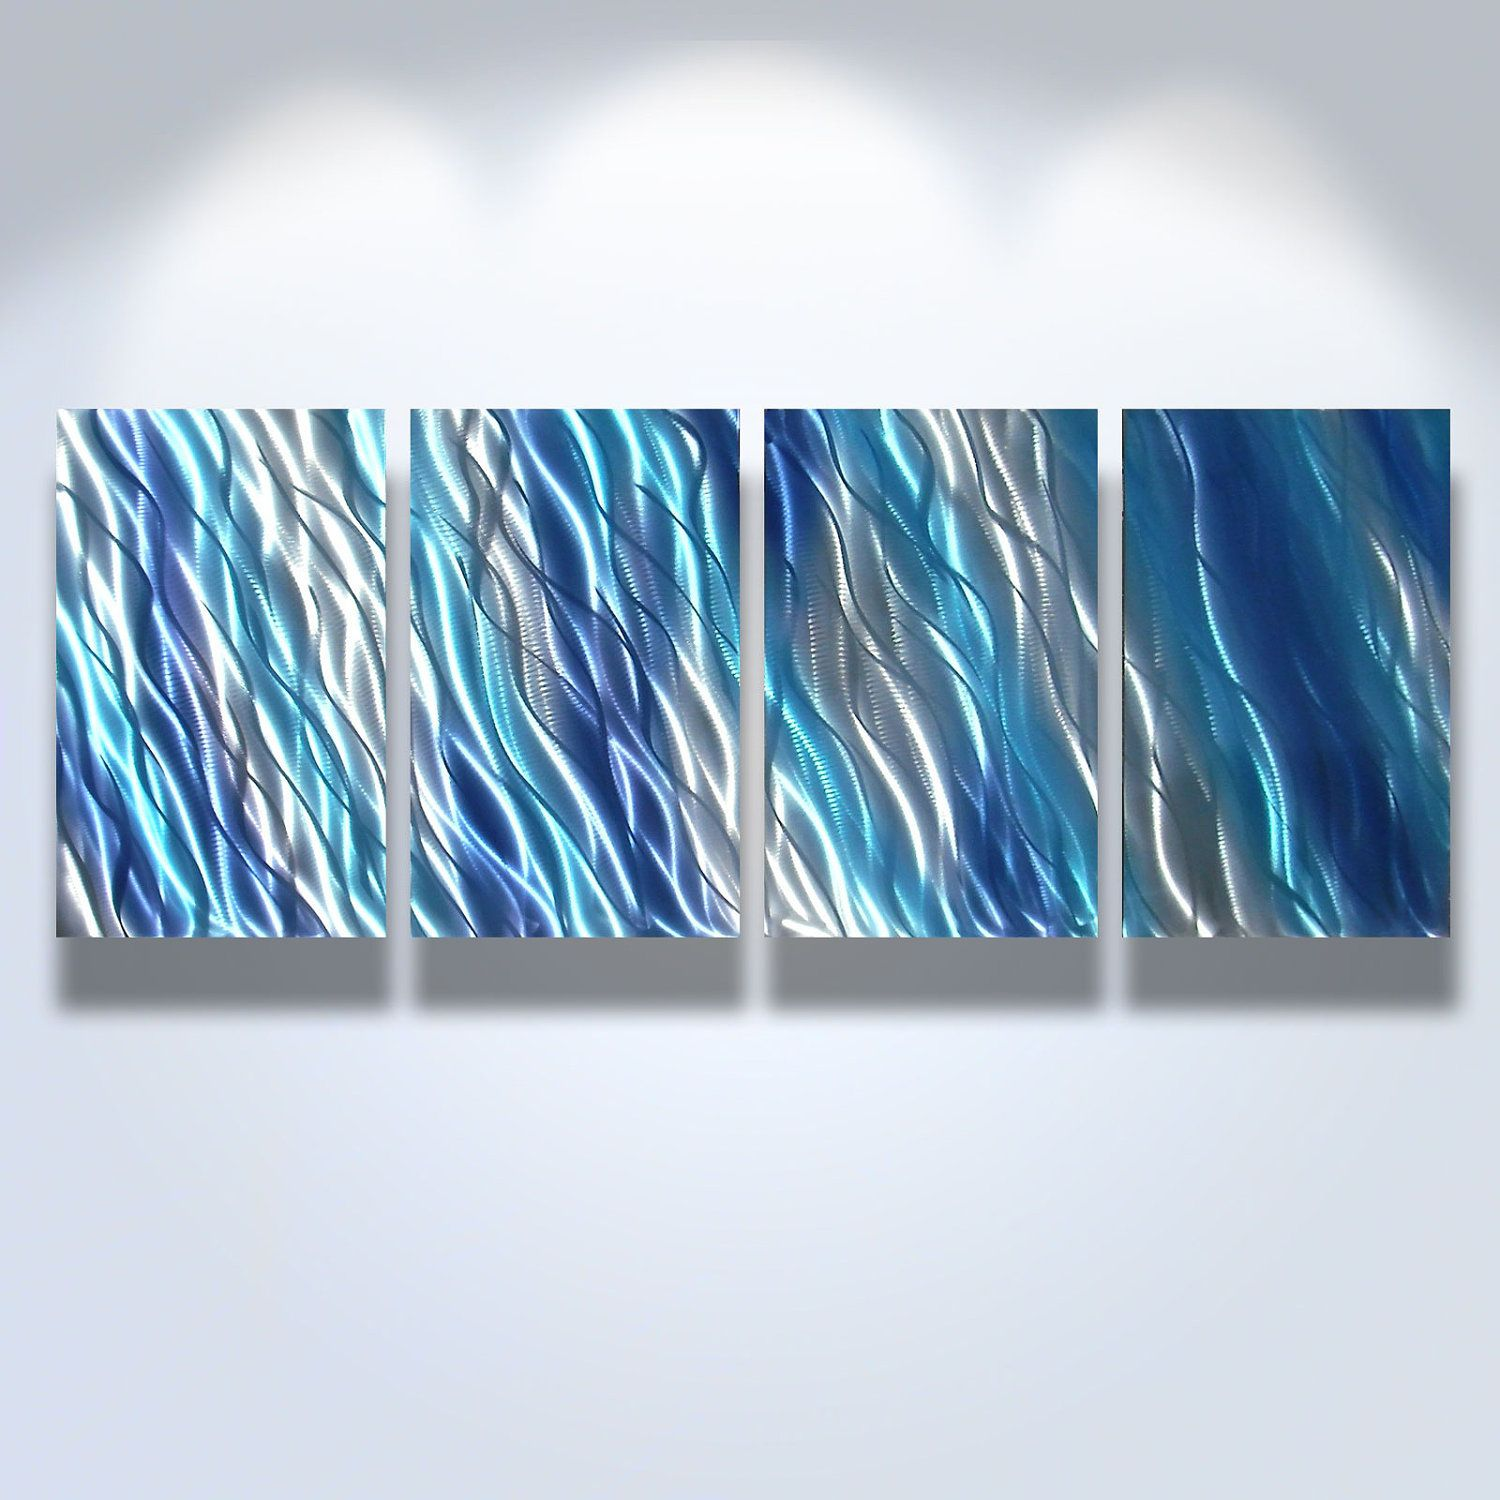 Blue Metal Wall Decor Inspiration Metal Wall Art Decor Abstract Contemporary Modern Sculpture Review